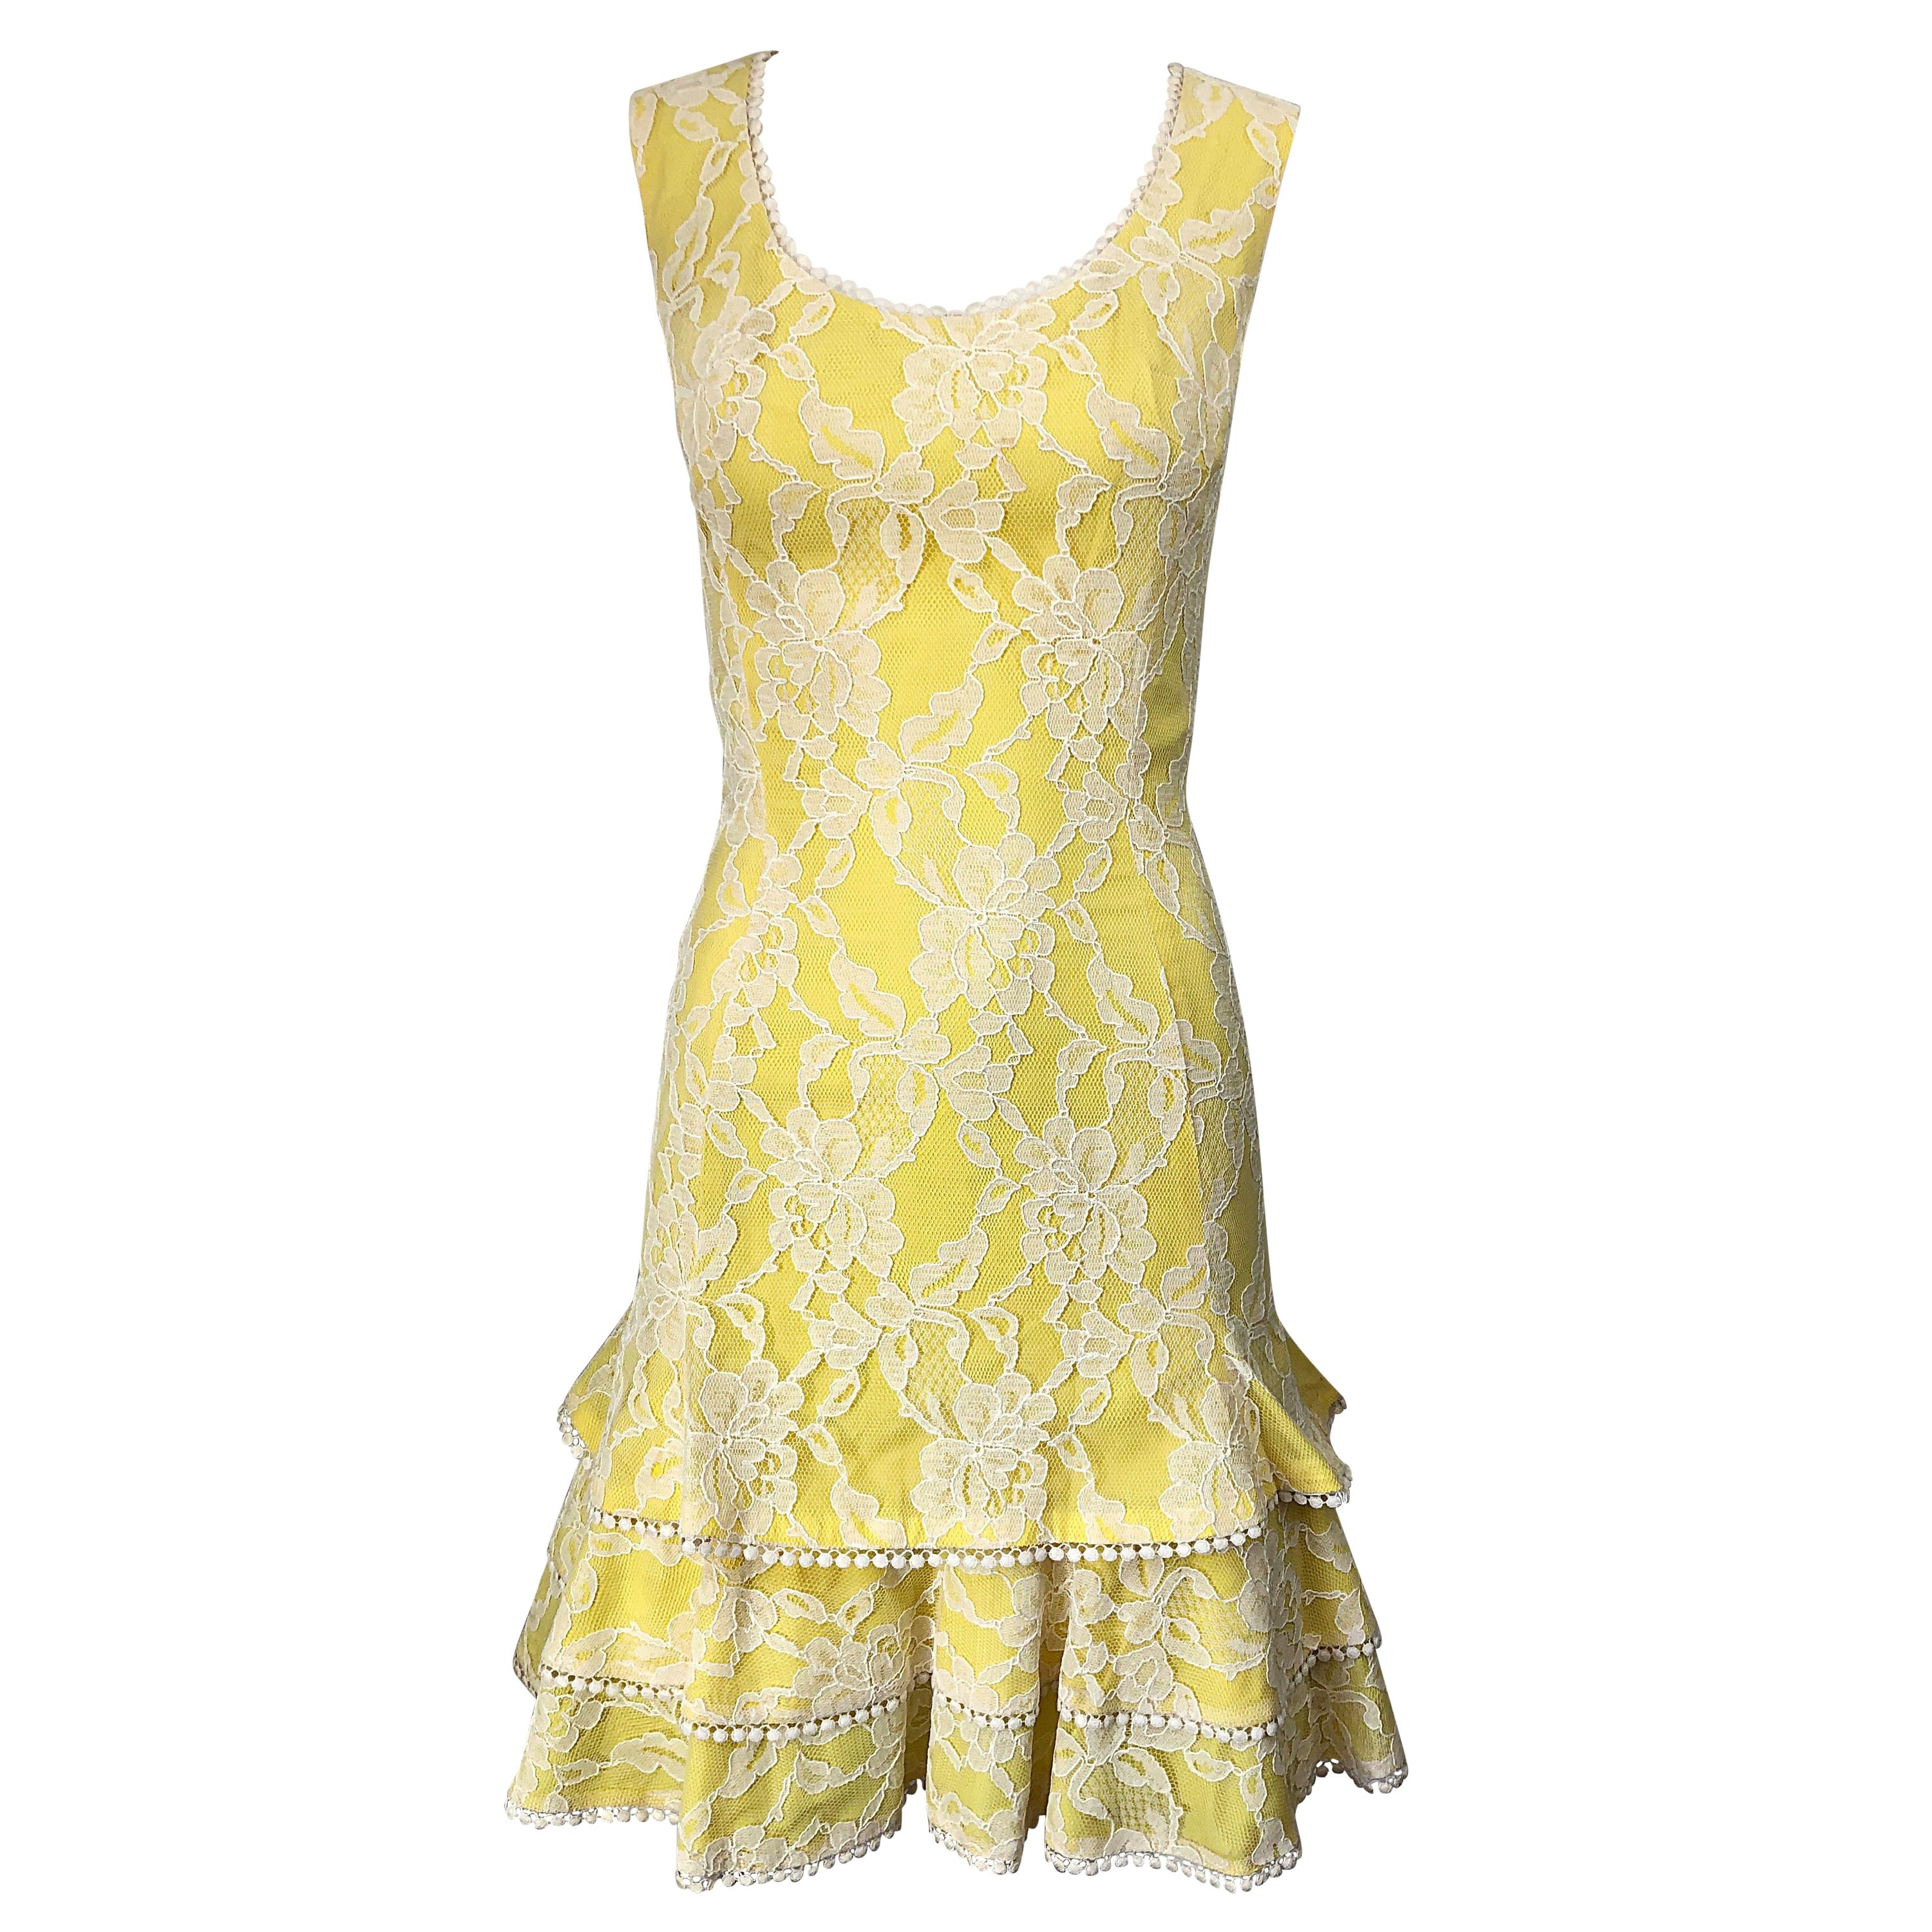 1960s Lilli Diamond Canary Yellow and White Lace Silk Vintage 60s Dress